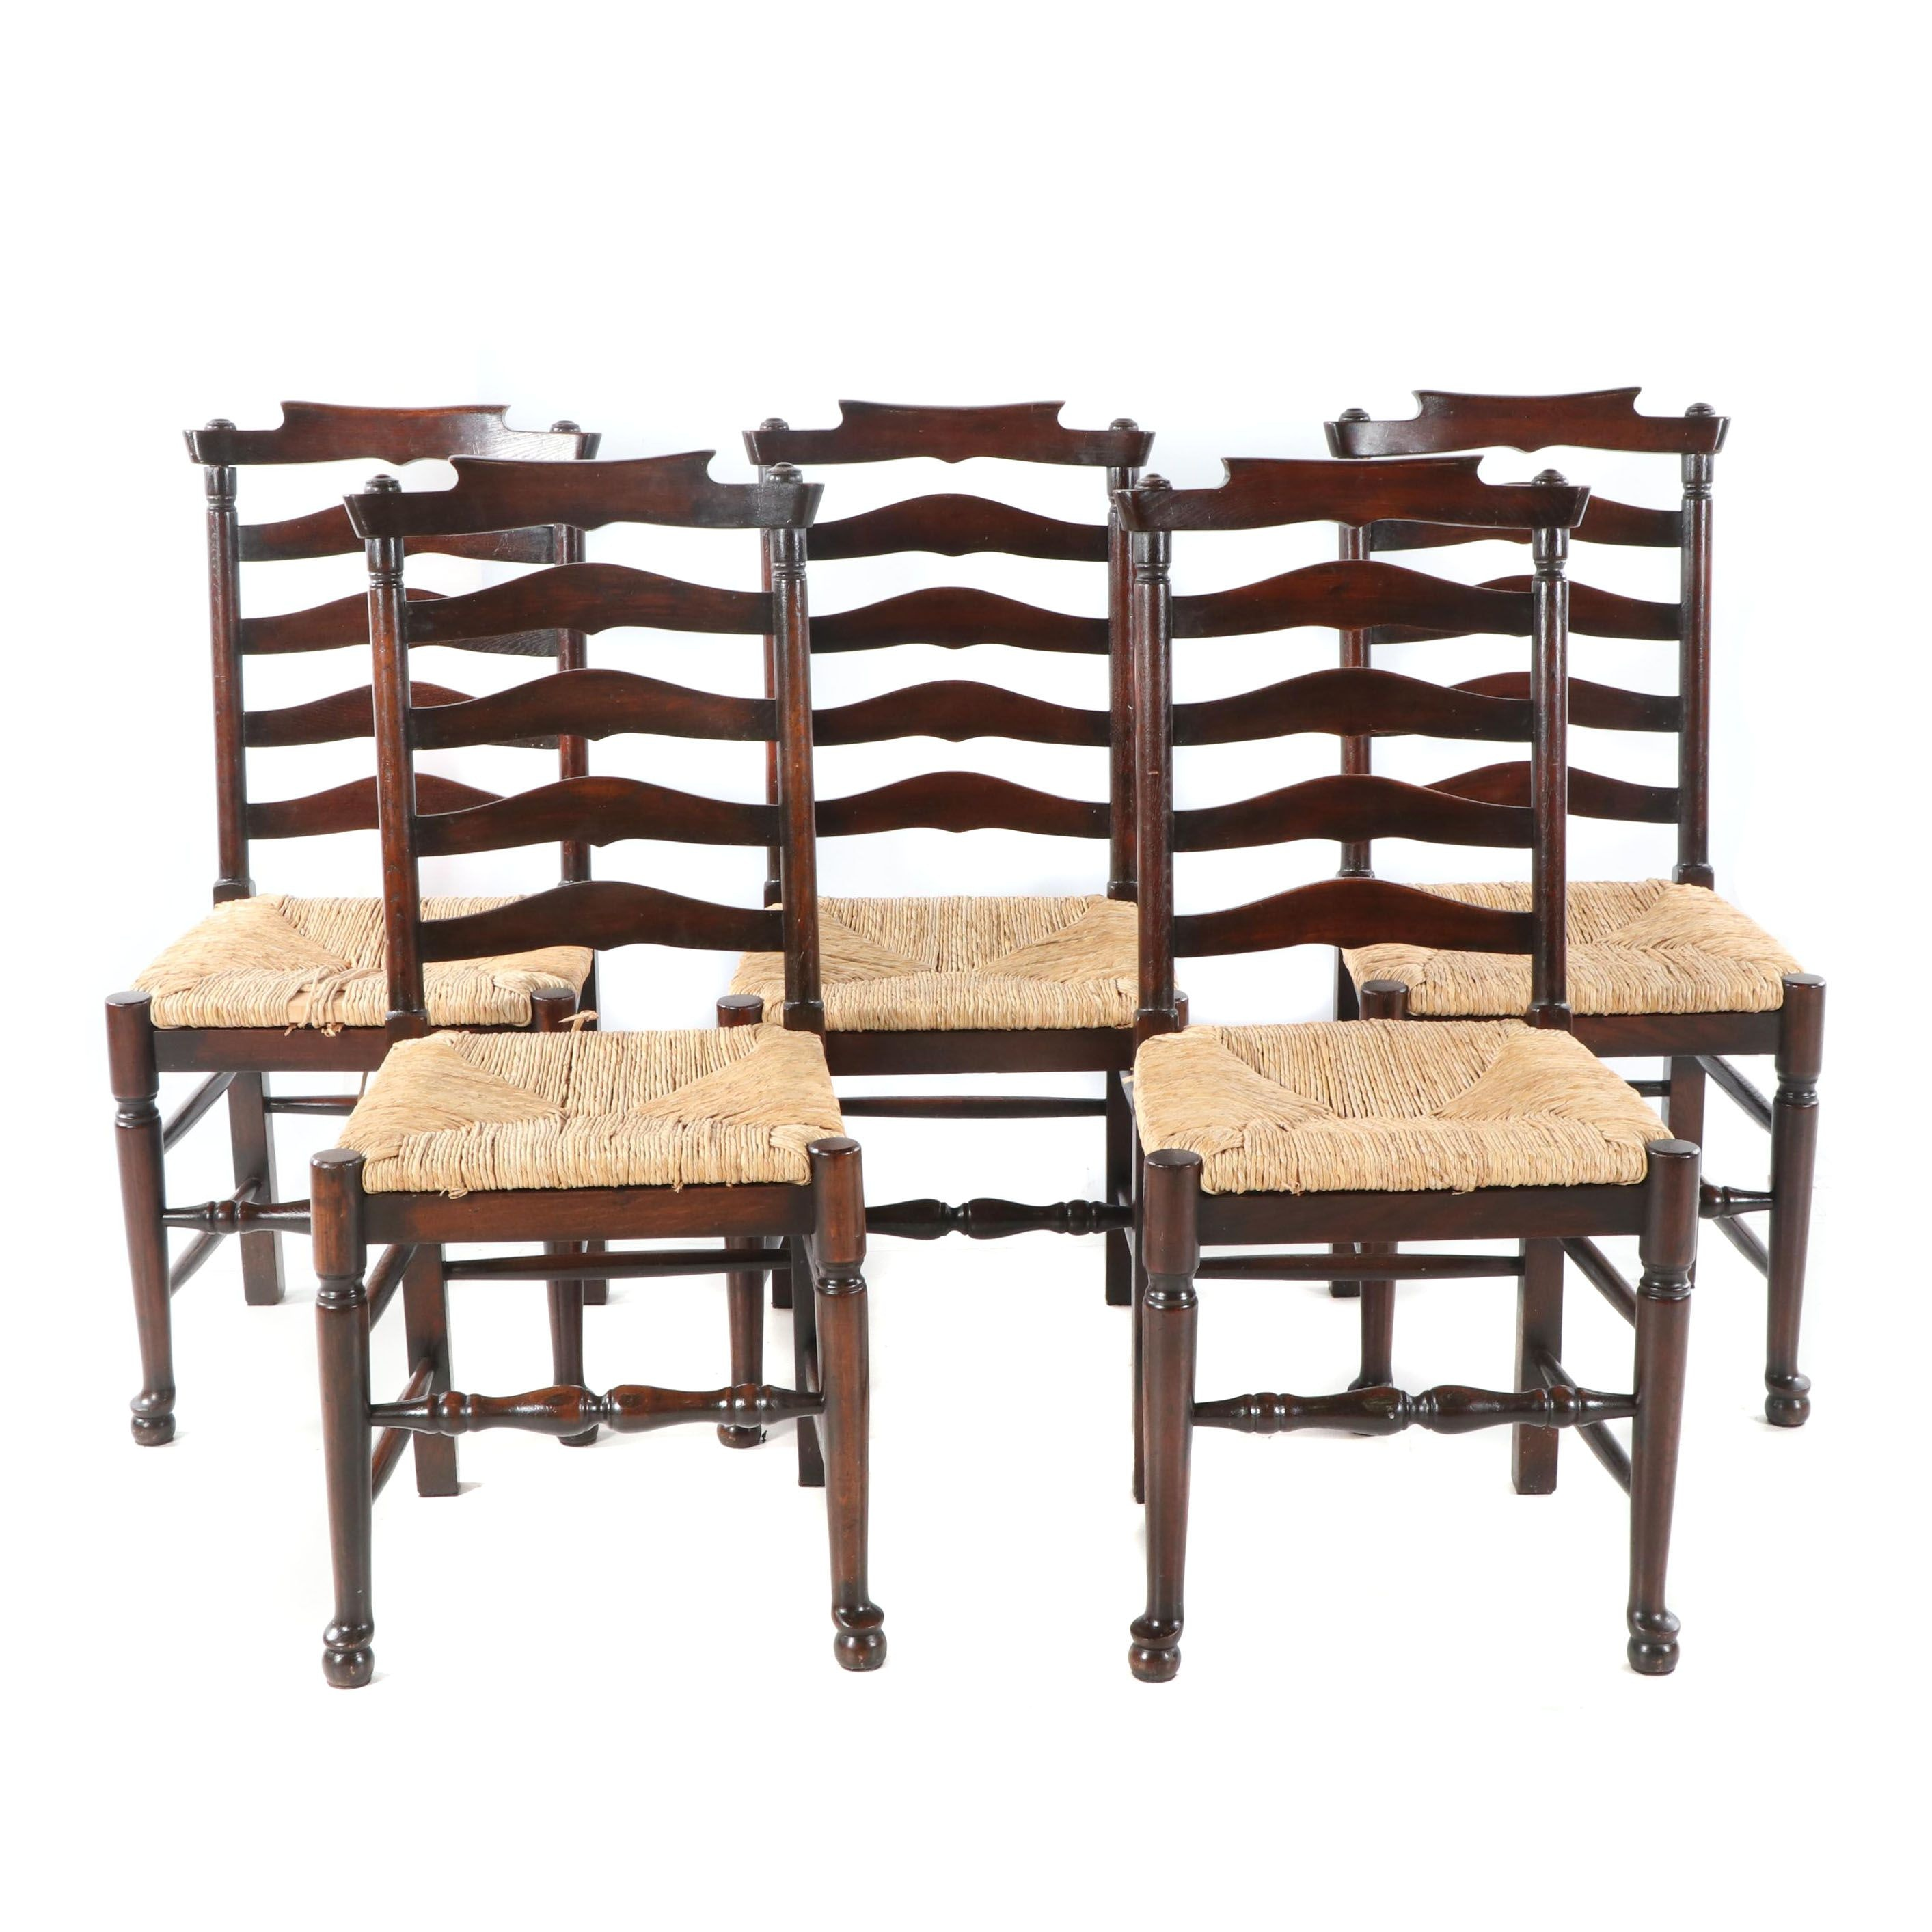 Stained Oak Ladder Back Chairs Set, 21st Century